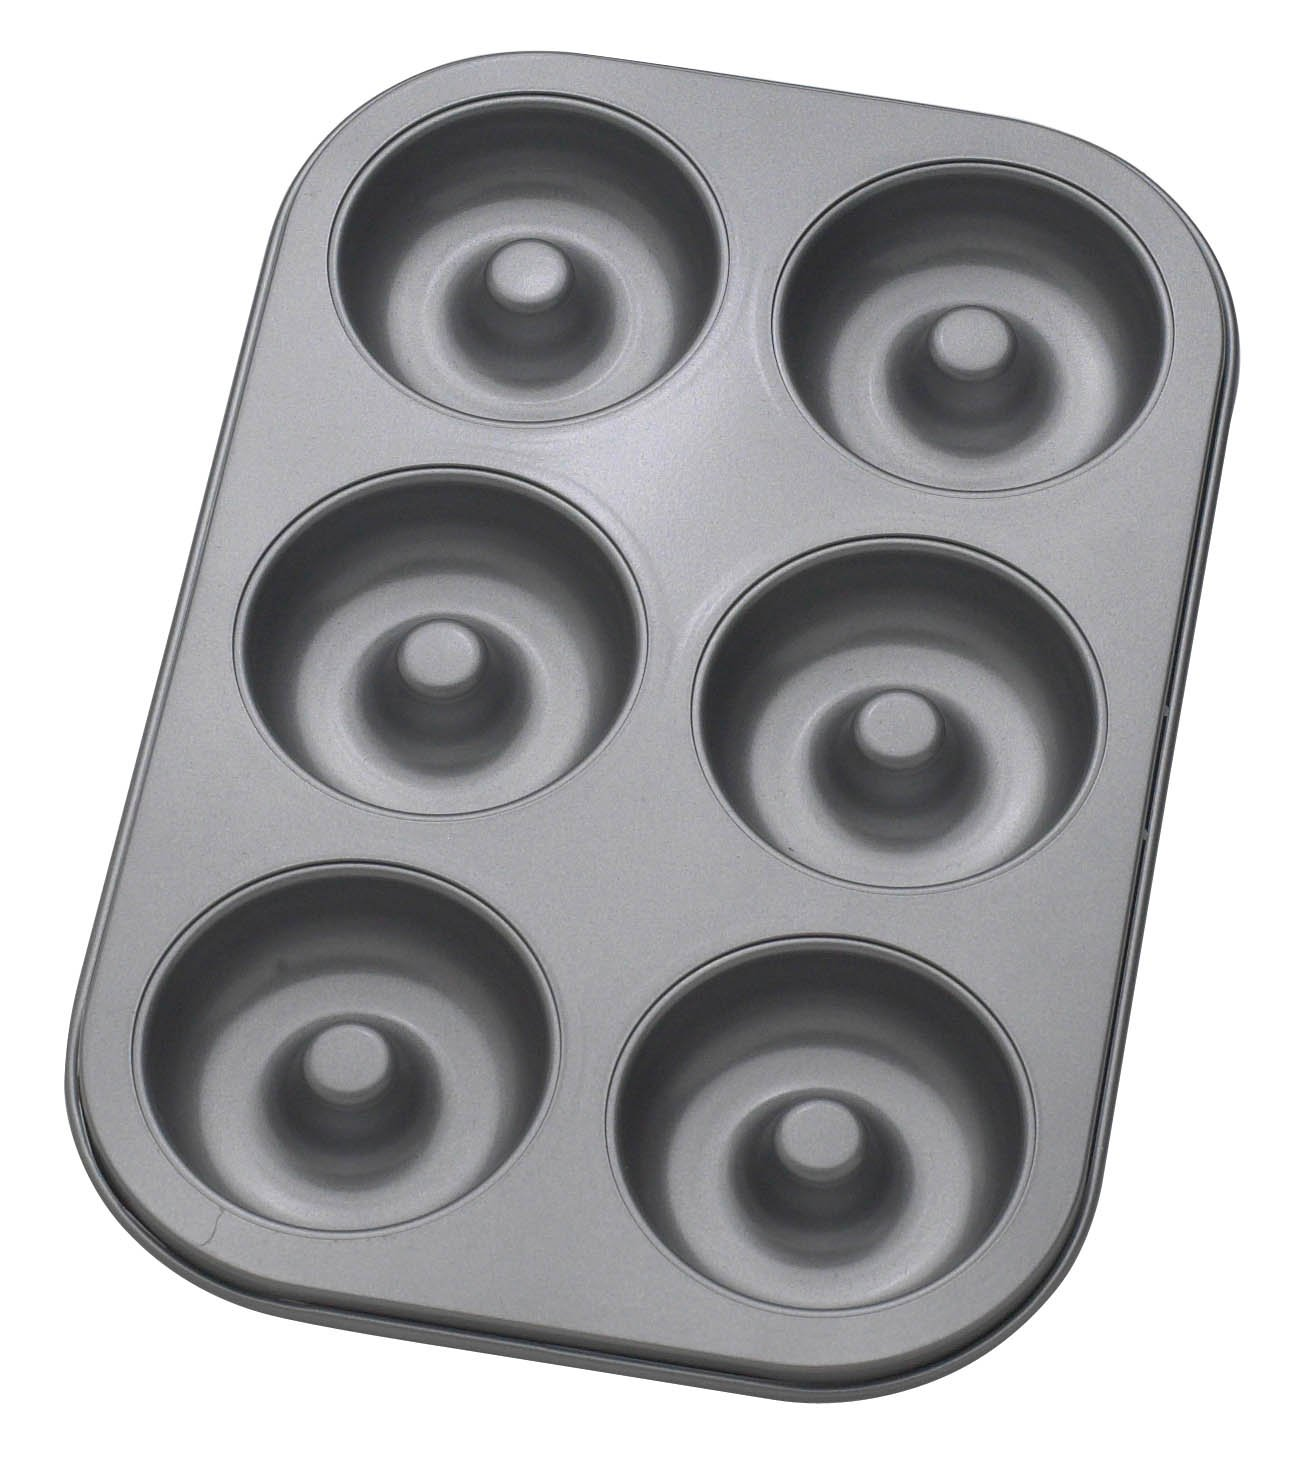 Mrs. Anderson's Baking 43710 6-Cup Donut Pan, Carbon Steel with Quick-Release Non-Stick Coating